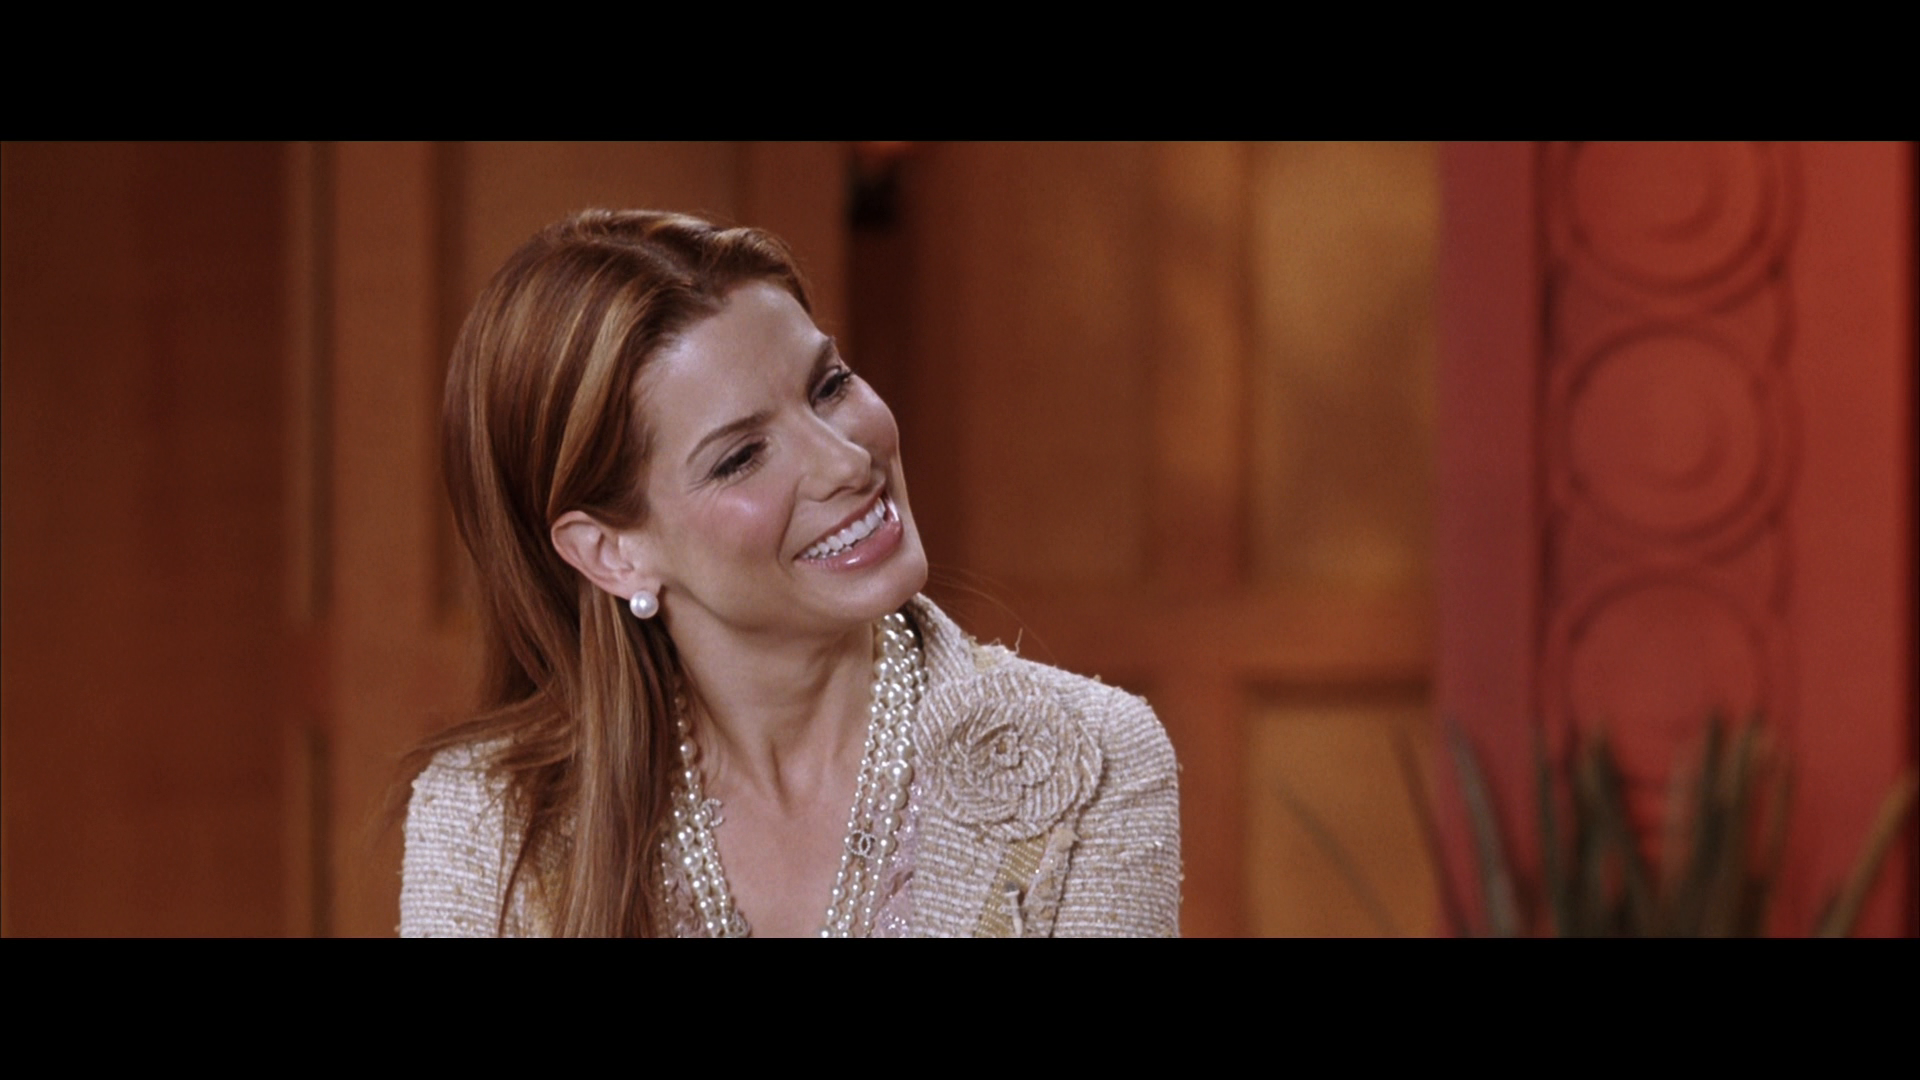 Miss Congeniality 2 - Armed and Fabulous 2005 BluRay REMUX 1080p VC-1 DTS-HD MA 5.1 - KRaLiMaRKo